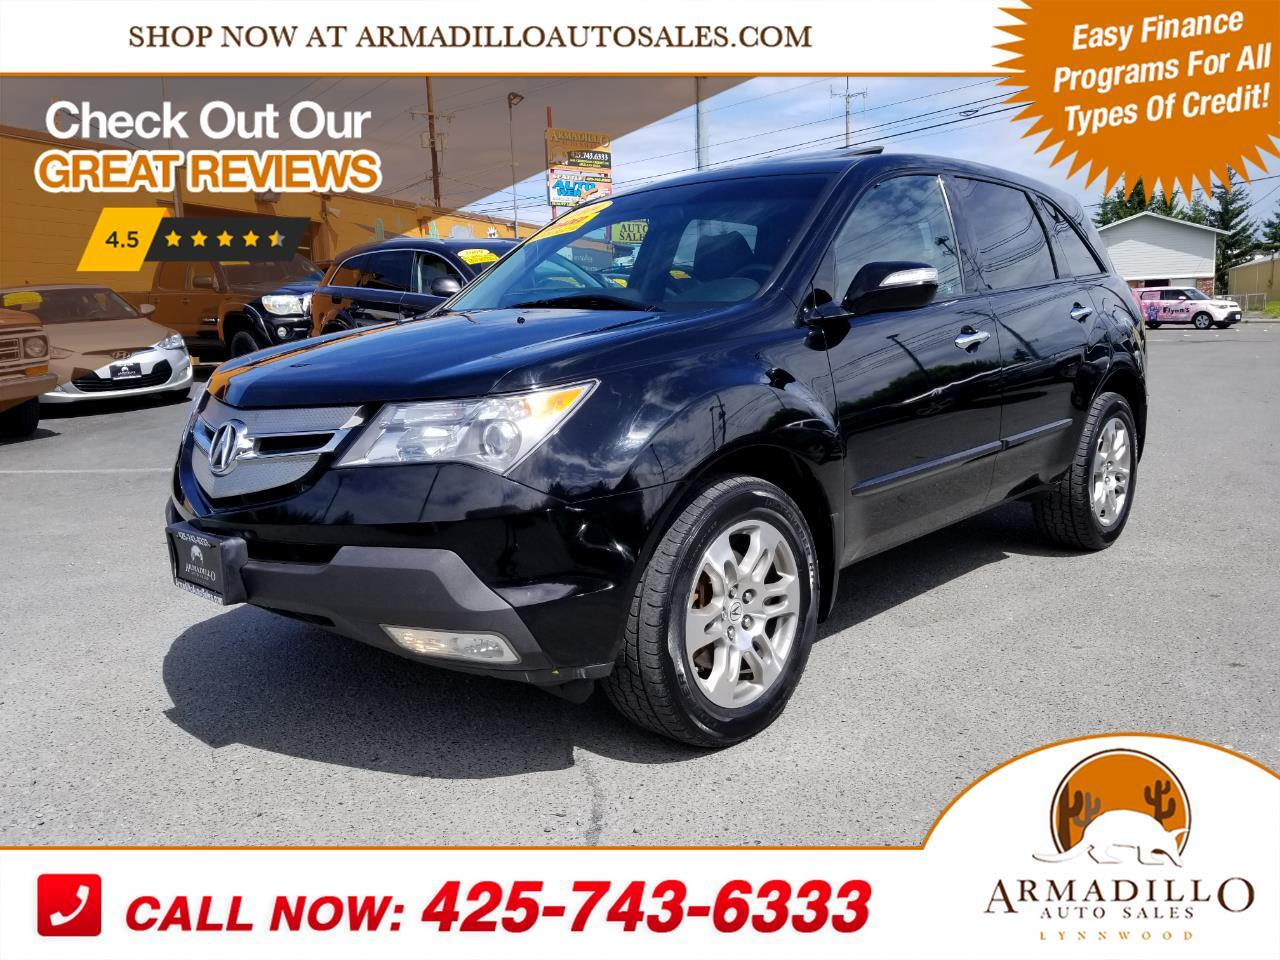 2009 Acura MDX SH-AWD w/Navigation and DVD